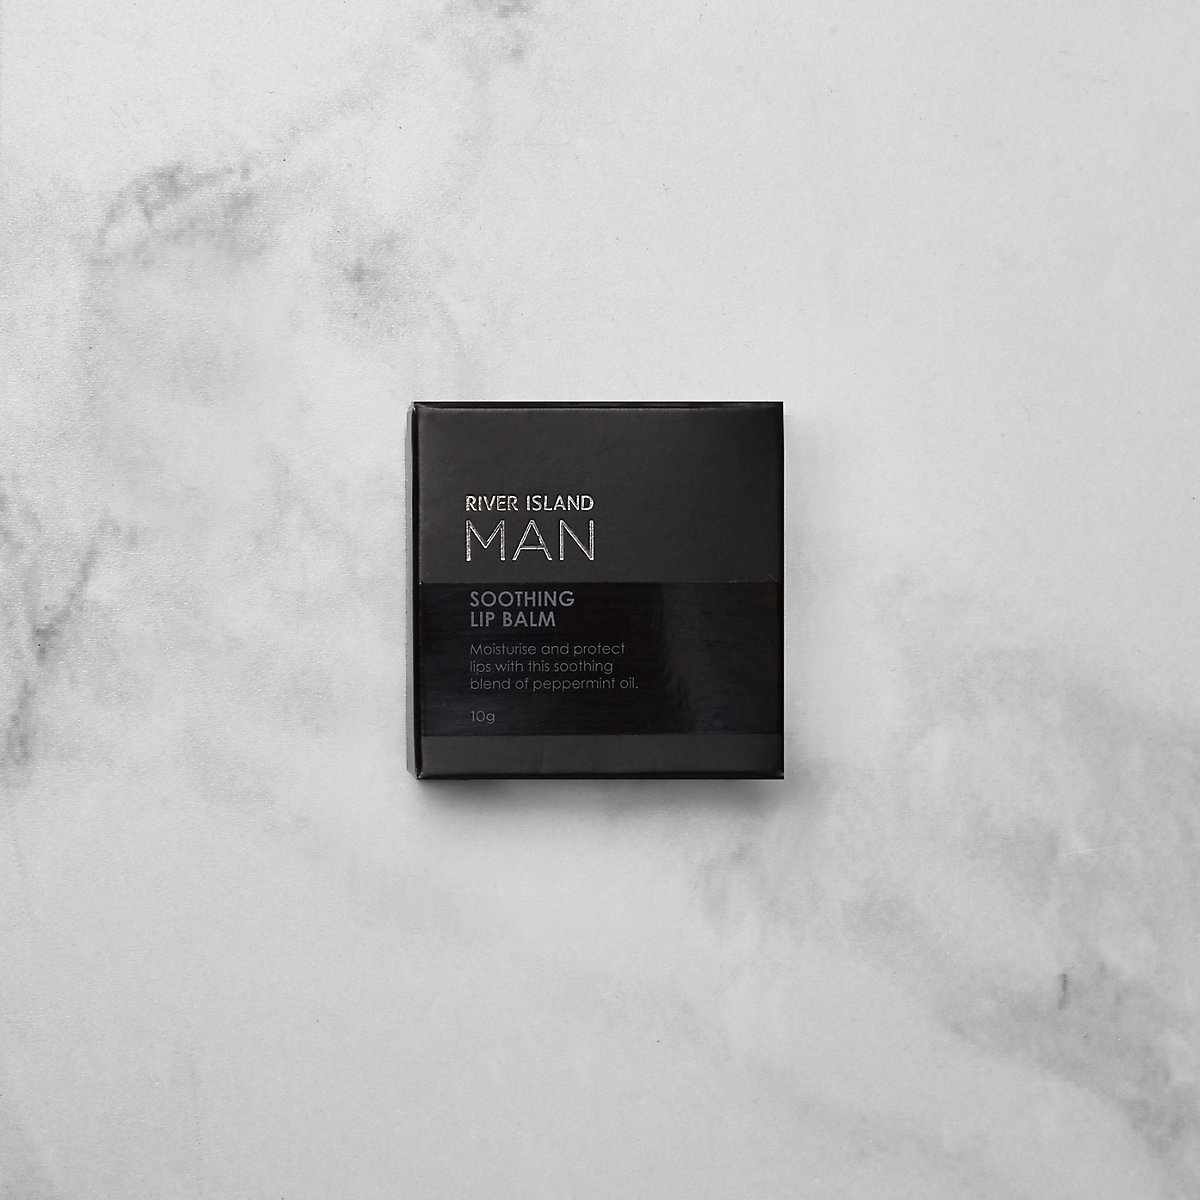 River Island Man soothing lip balm